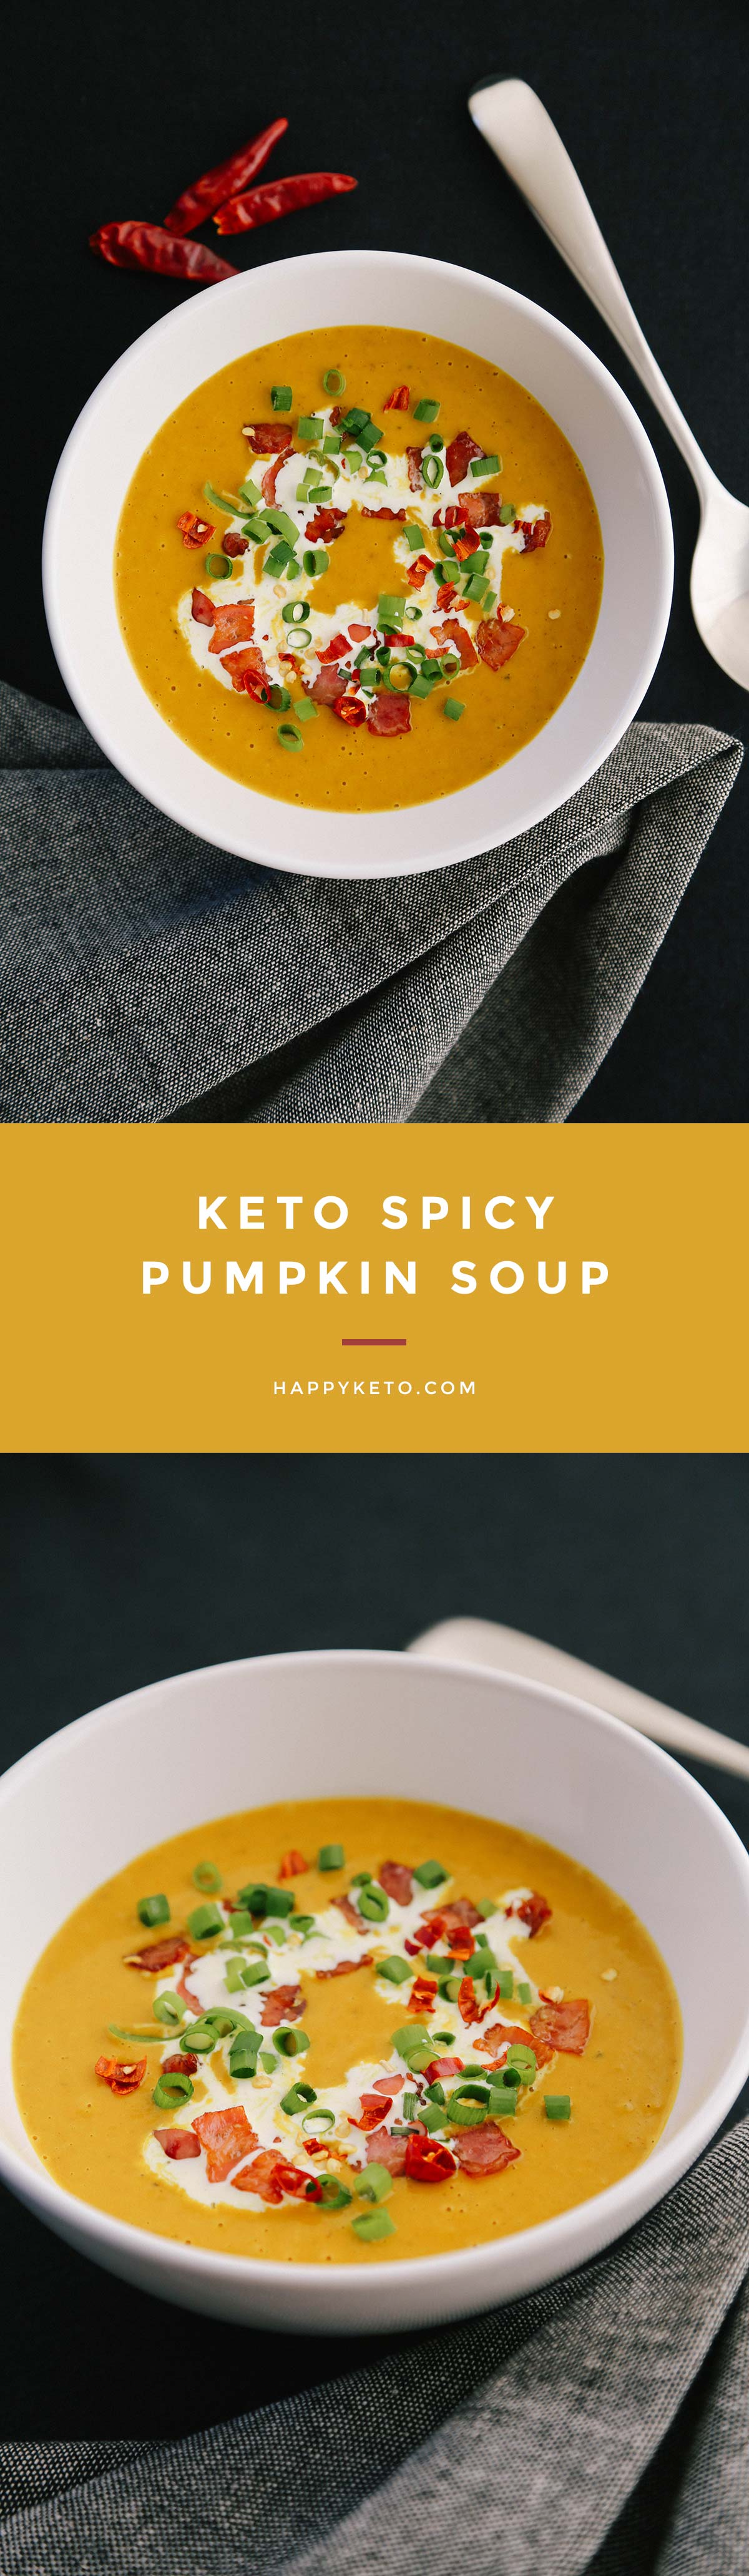 Keto pumpkin soup low carb. Easy recipe using kabocha.